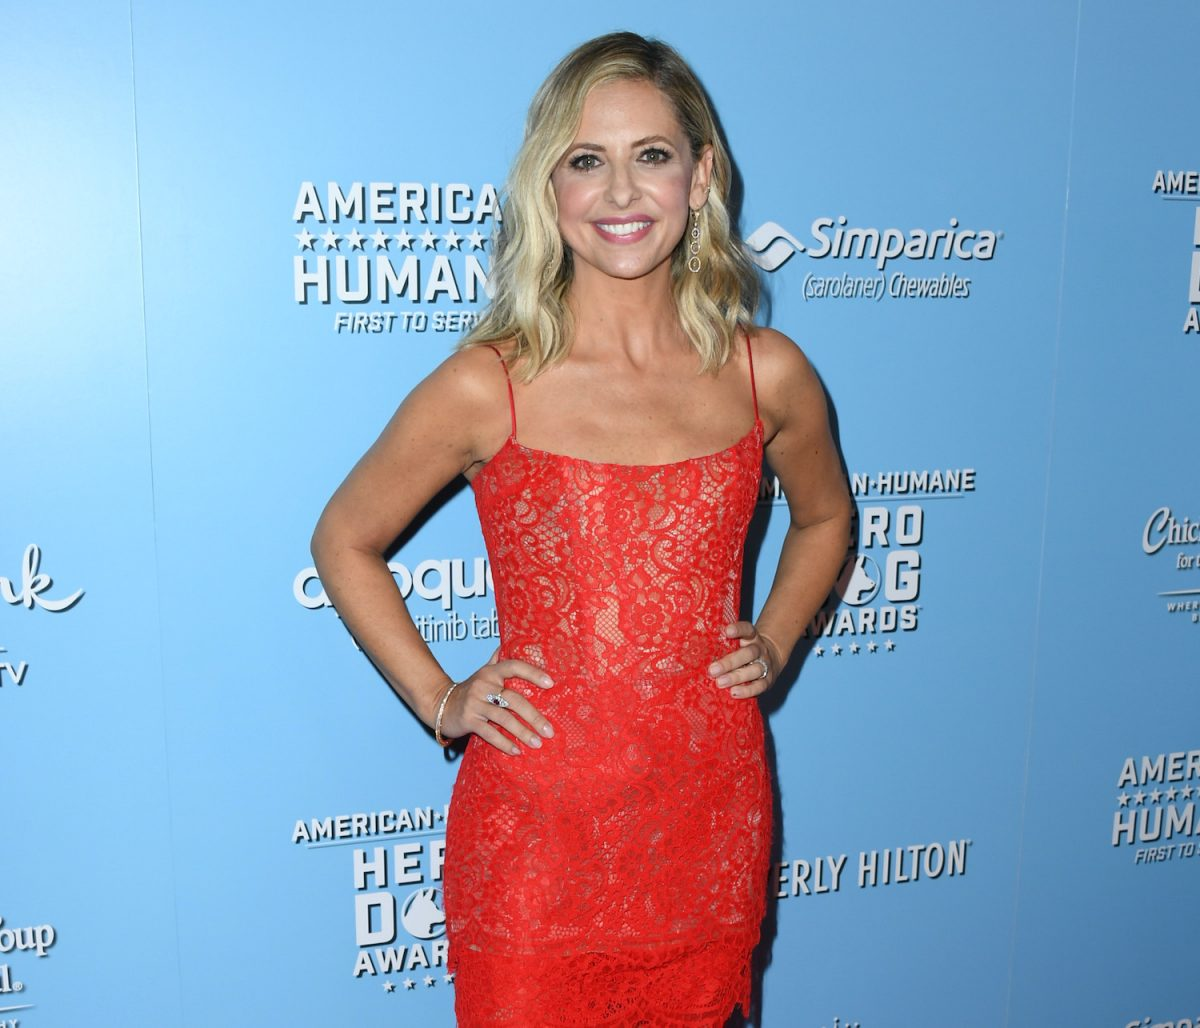 Sarah Michelle Gellar poses for cameras while attending the American Humane Hero Dog Awards in 2019